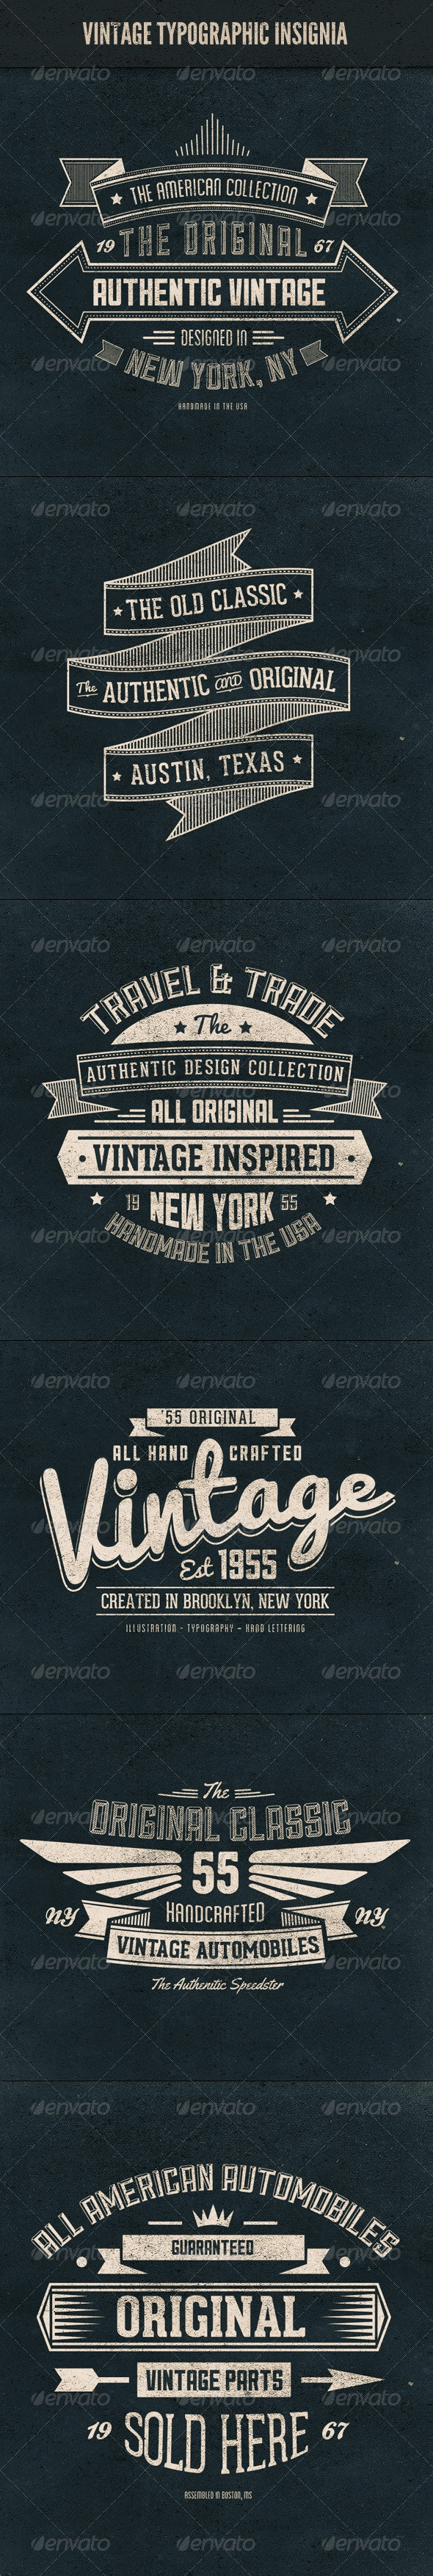 Vintage Typographic Insignia - Badges & Stickers Web Elements